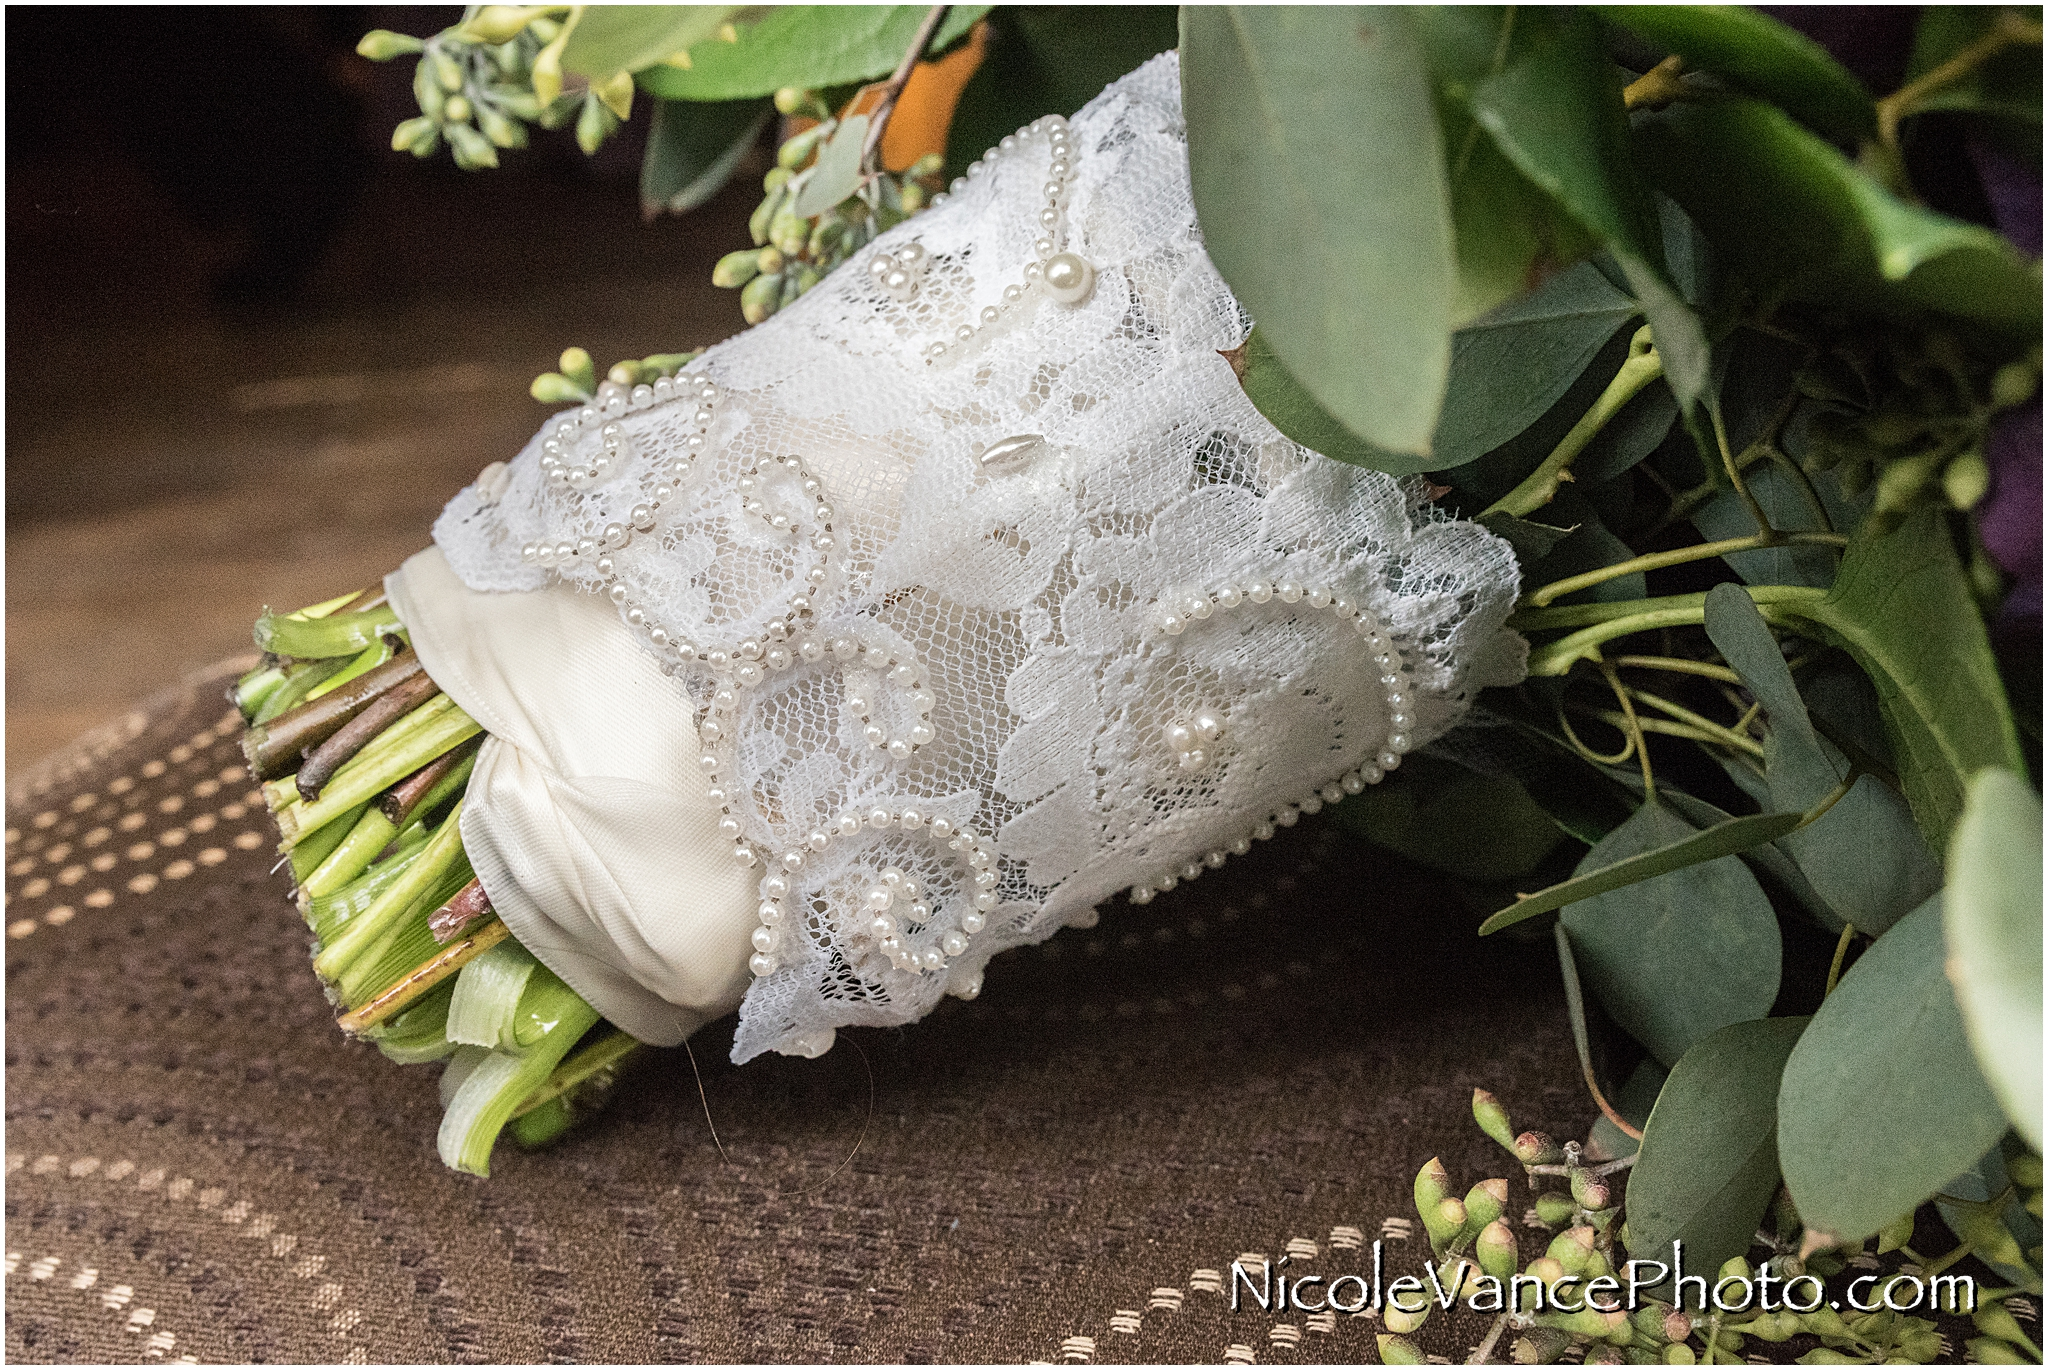 The vintage lace on the bride's bouquet is from her mother's wedding gown.